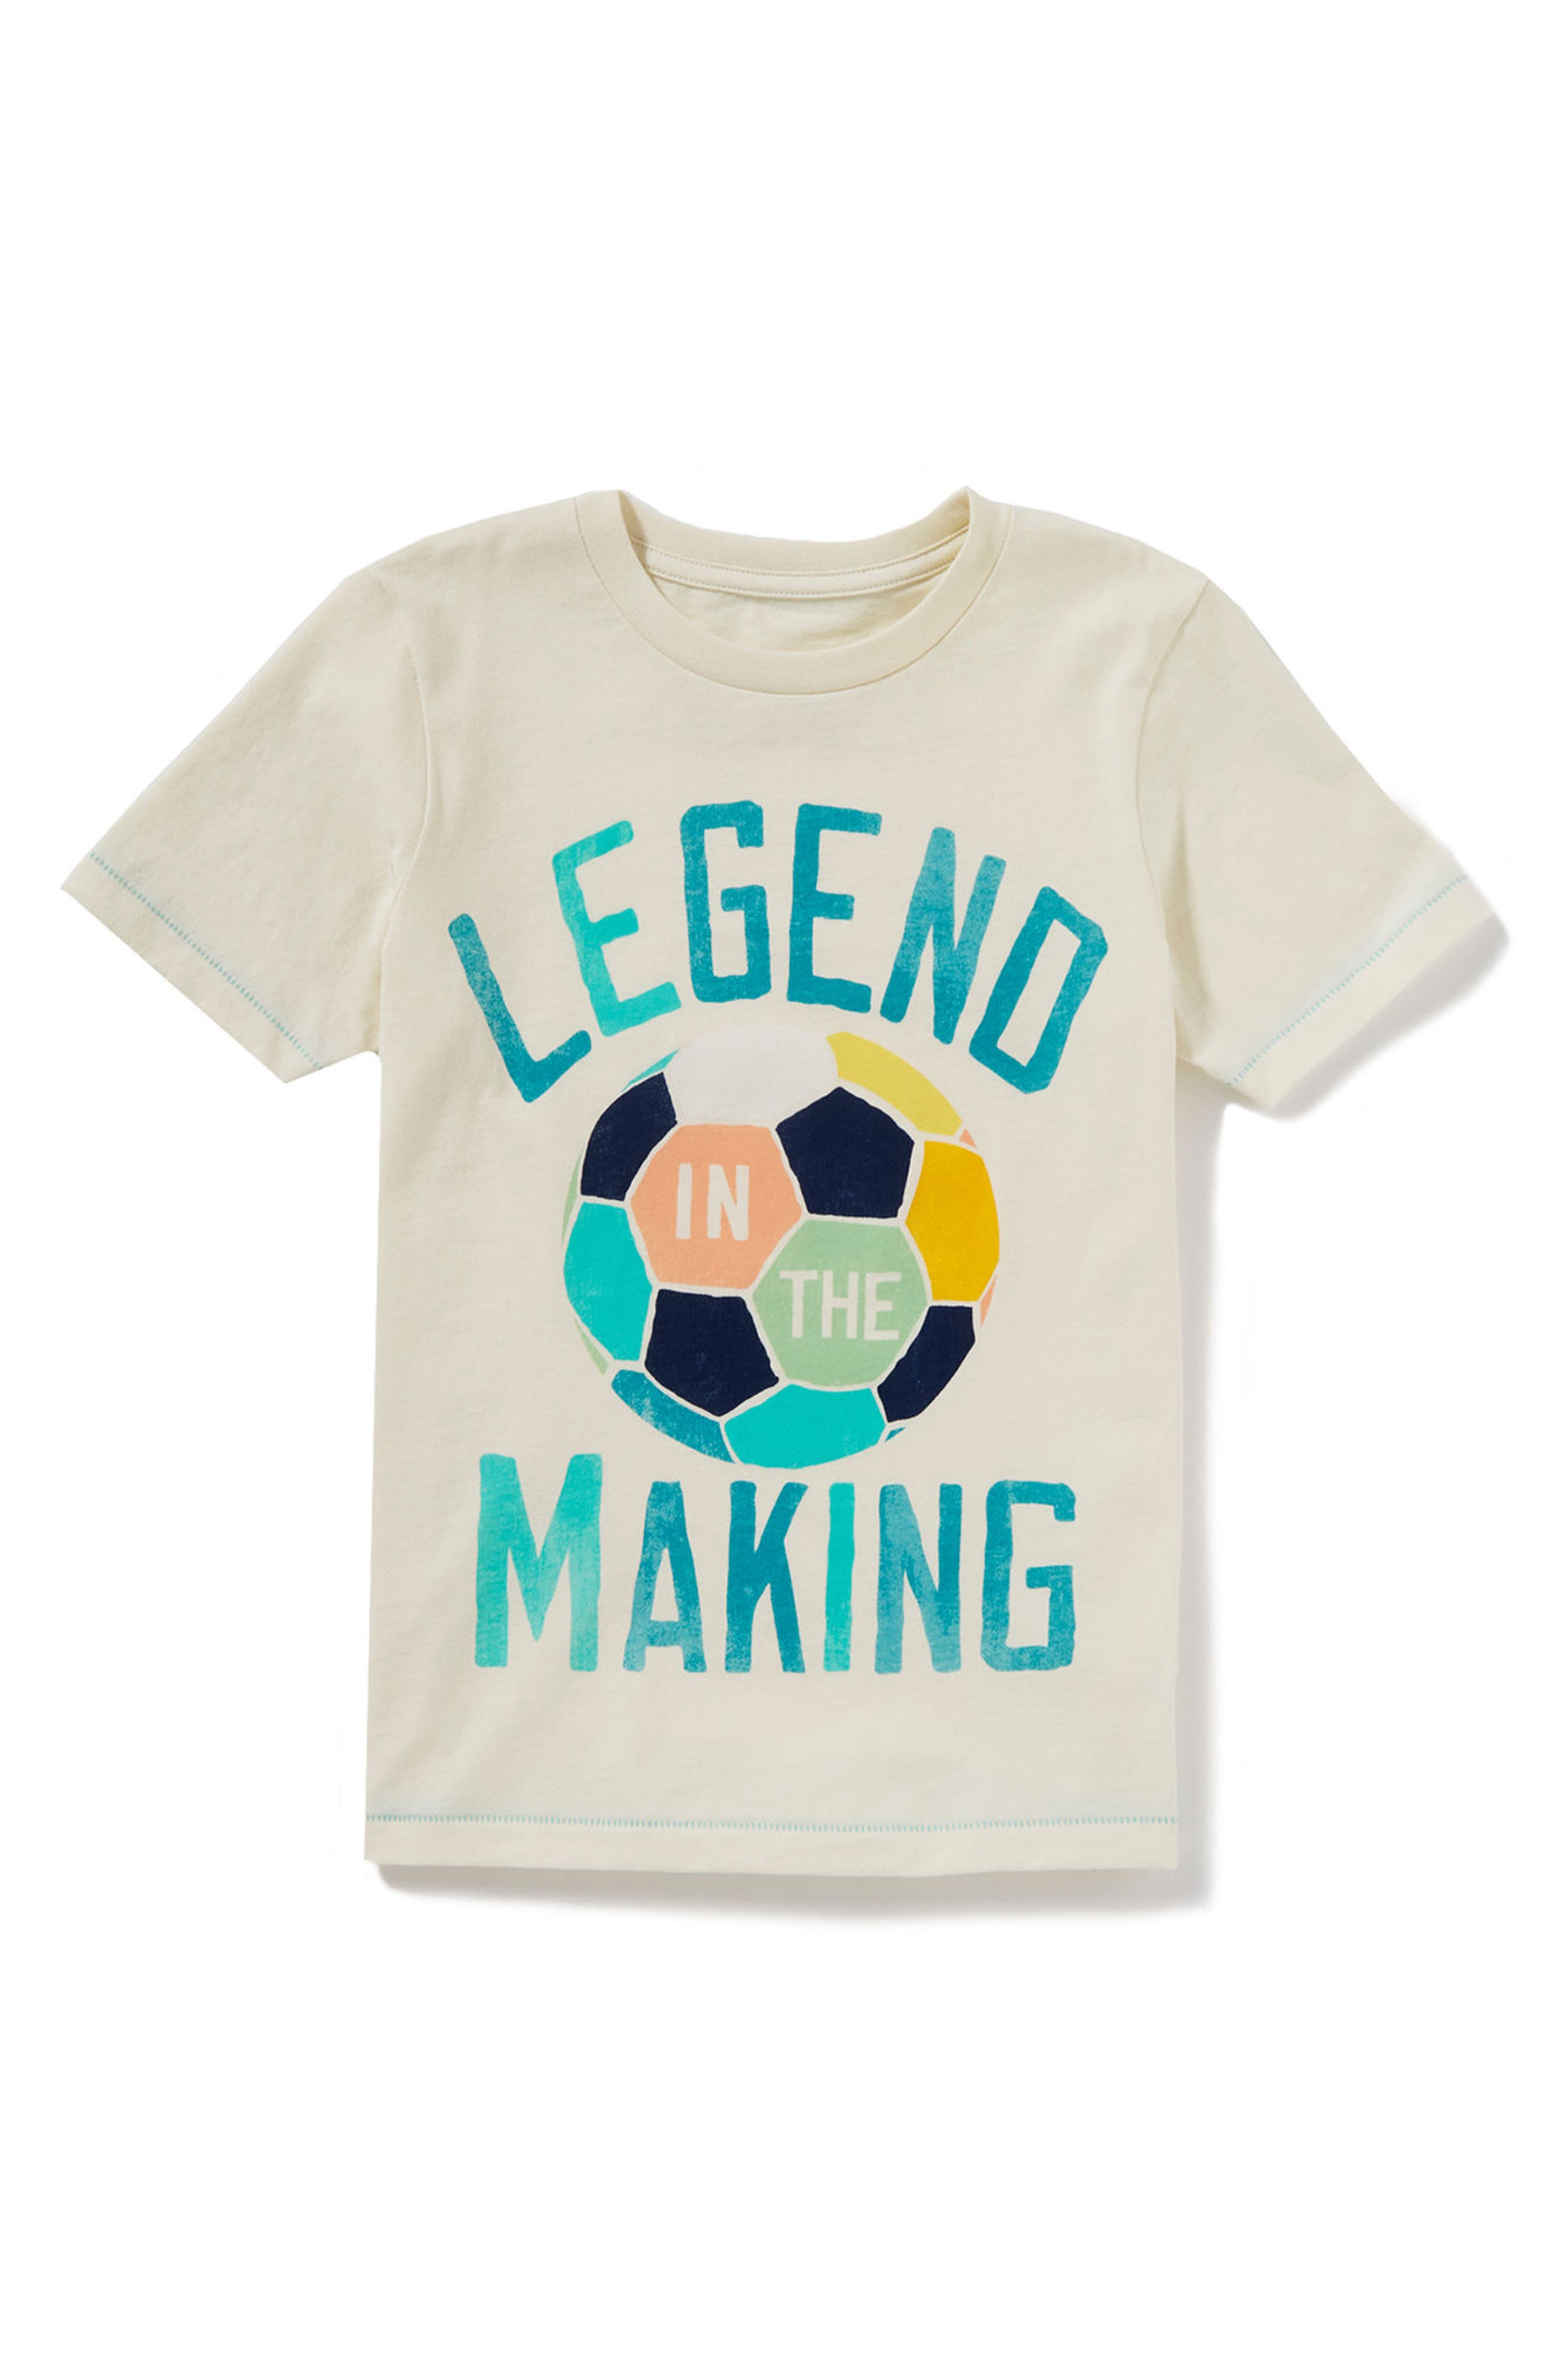 Peek Legend in the Making Graphic T-Shirt ( Toddler Boys, Little Boys & Big Boys)